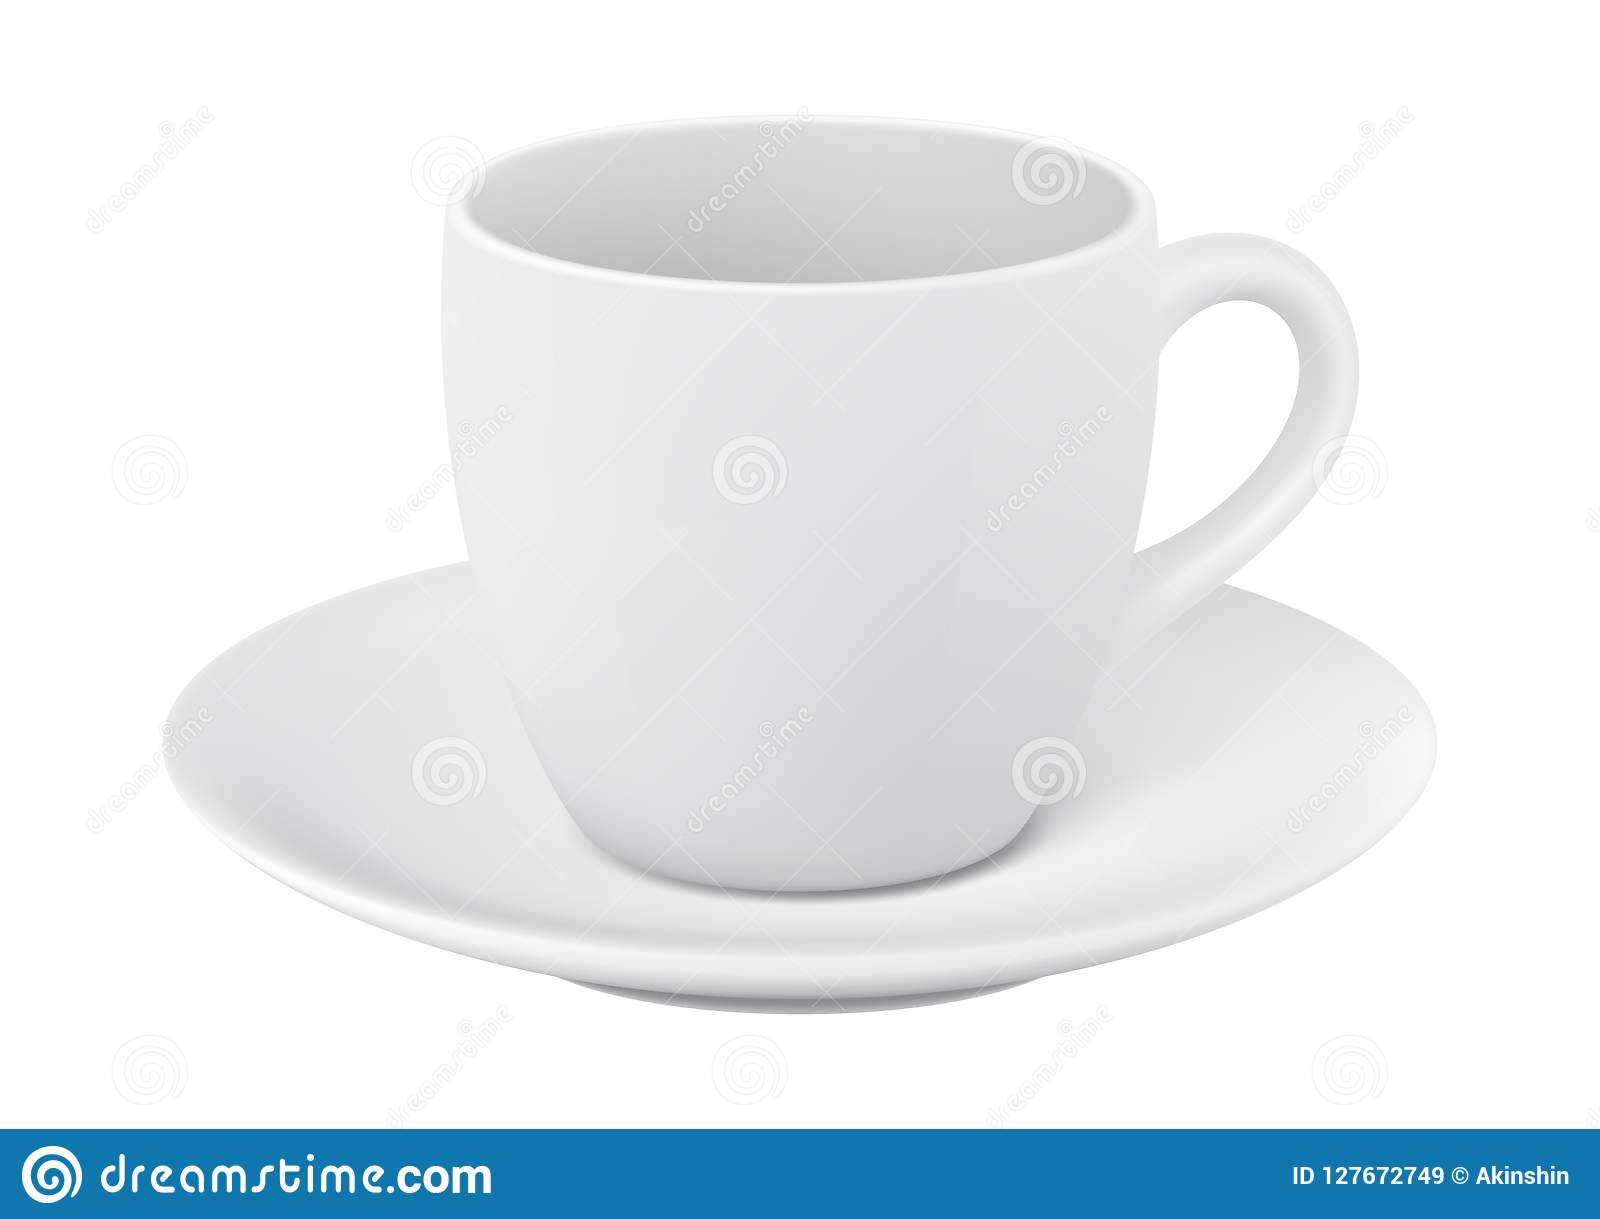 Cup And Saucer On White Background Stock Vector Illustration Of Saucer Template 127672749